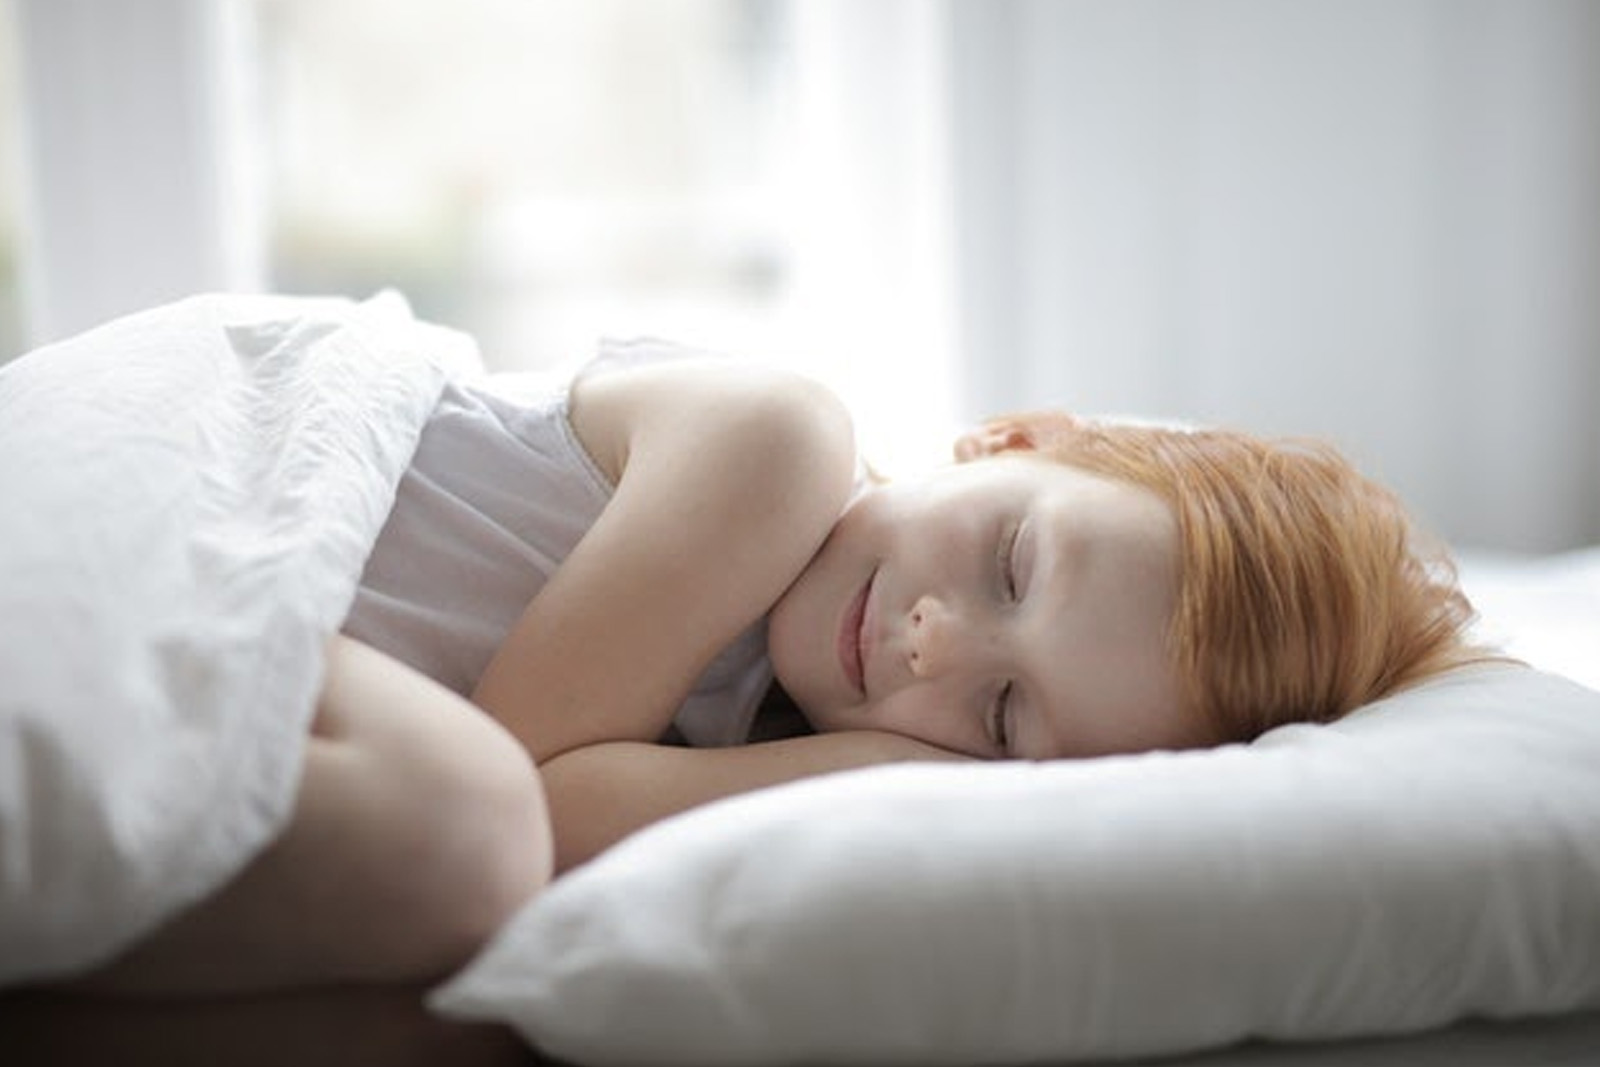 Little girl smiling while sleeping